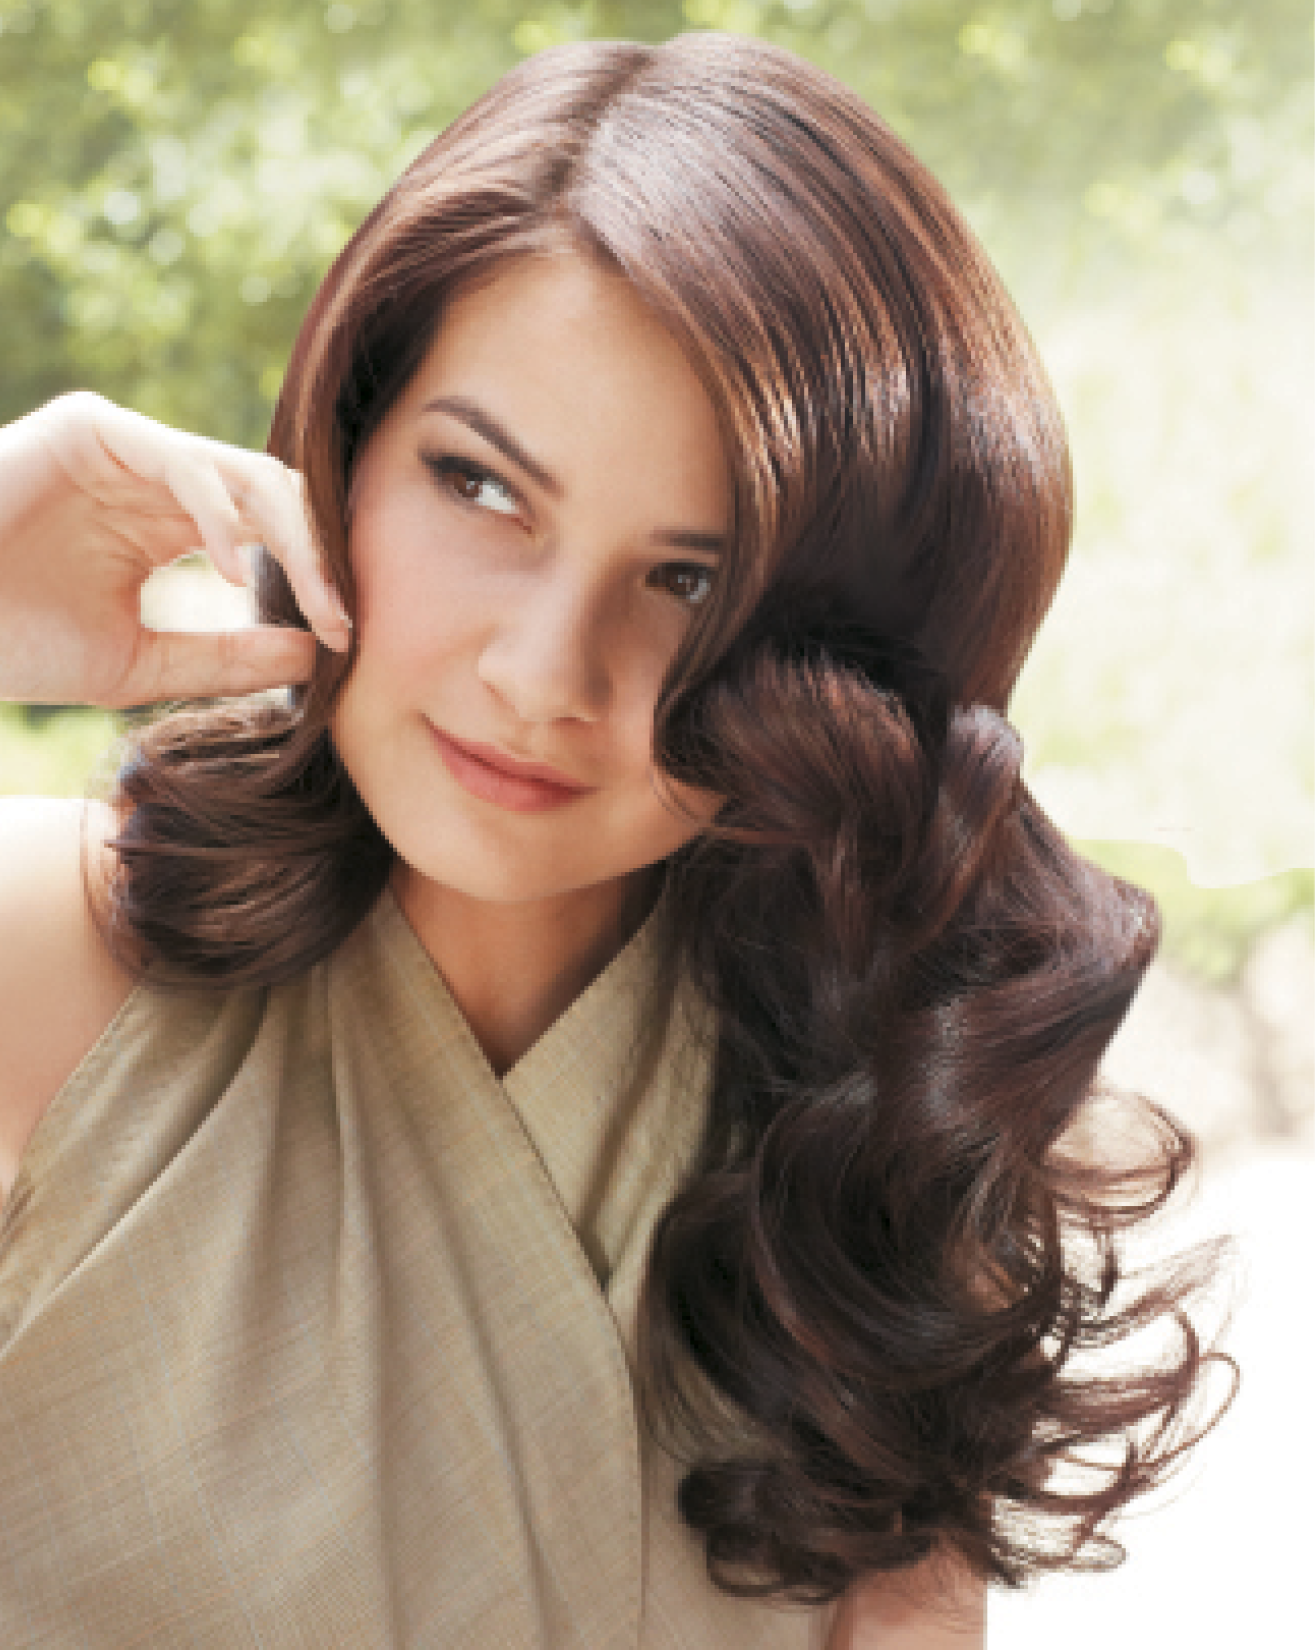 Markham and Wilson used a 12-section pin curl set to achieve this look. They prepped strands with SuperRich Shampoo and Condition, then blended HeatProof Anti-Frizz Blow Dry Crème and LiftIt Color Protect Foam Mousse, applying the mixture to damp hair.